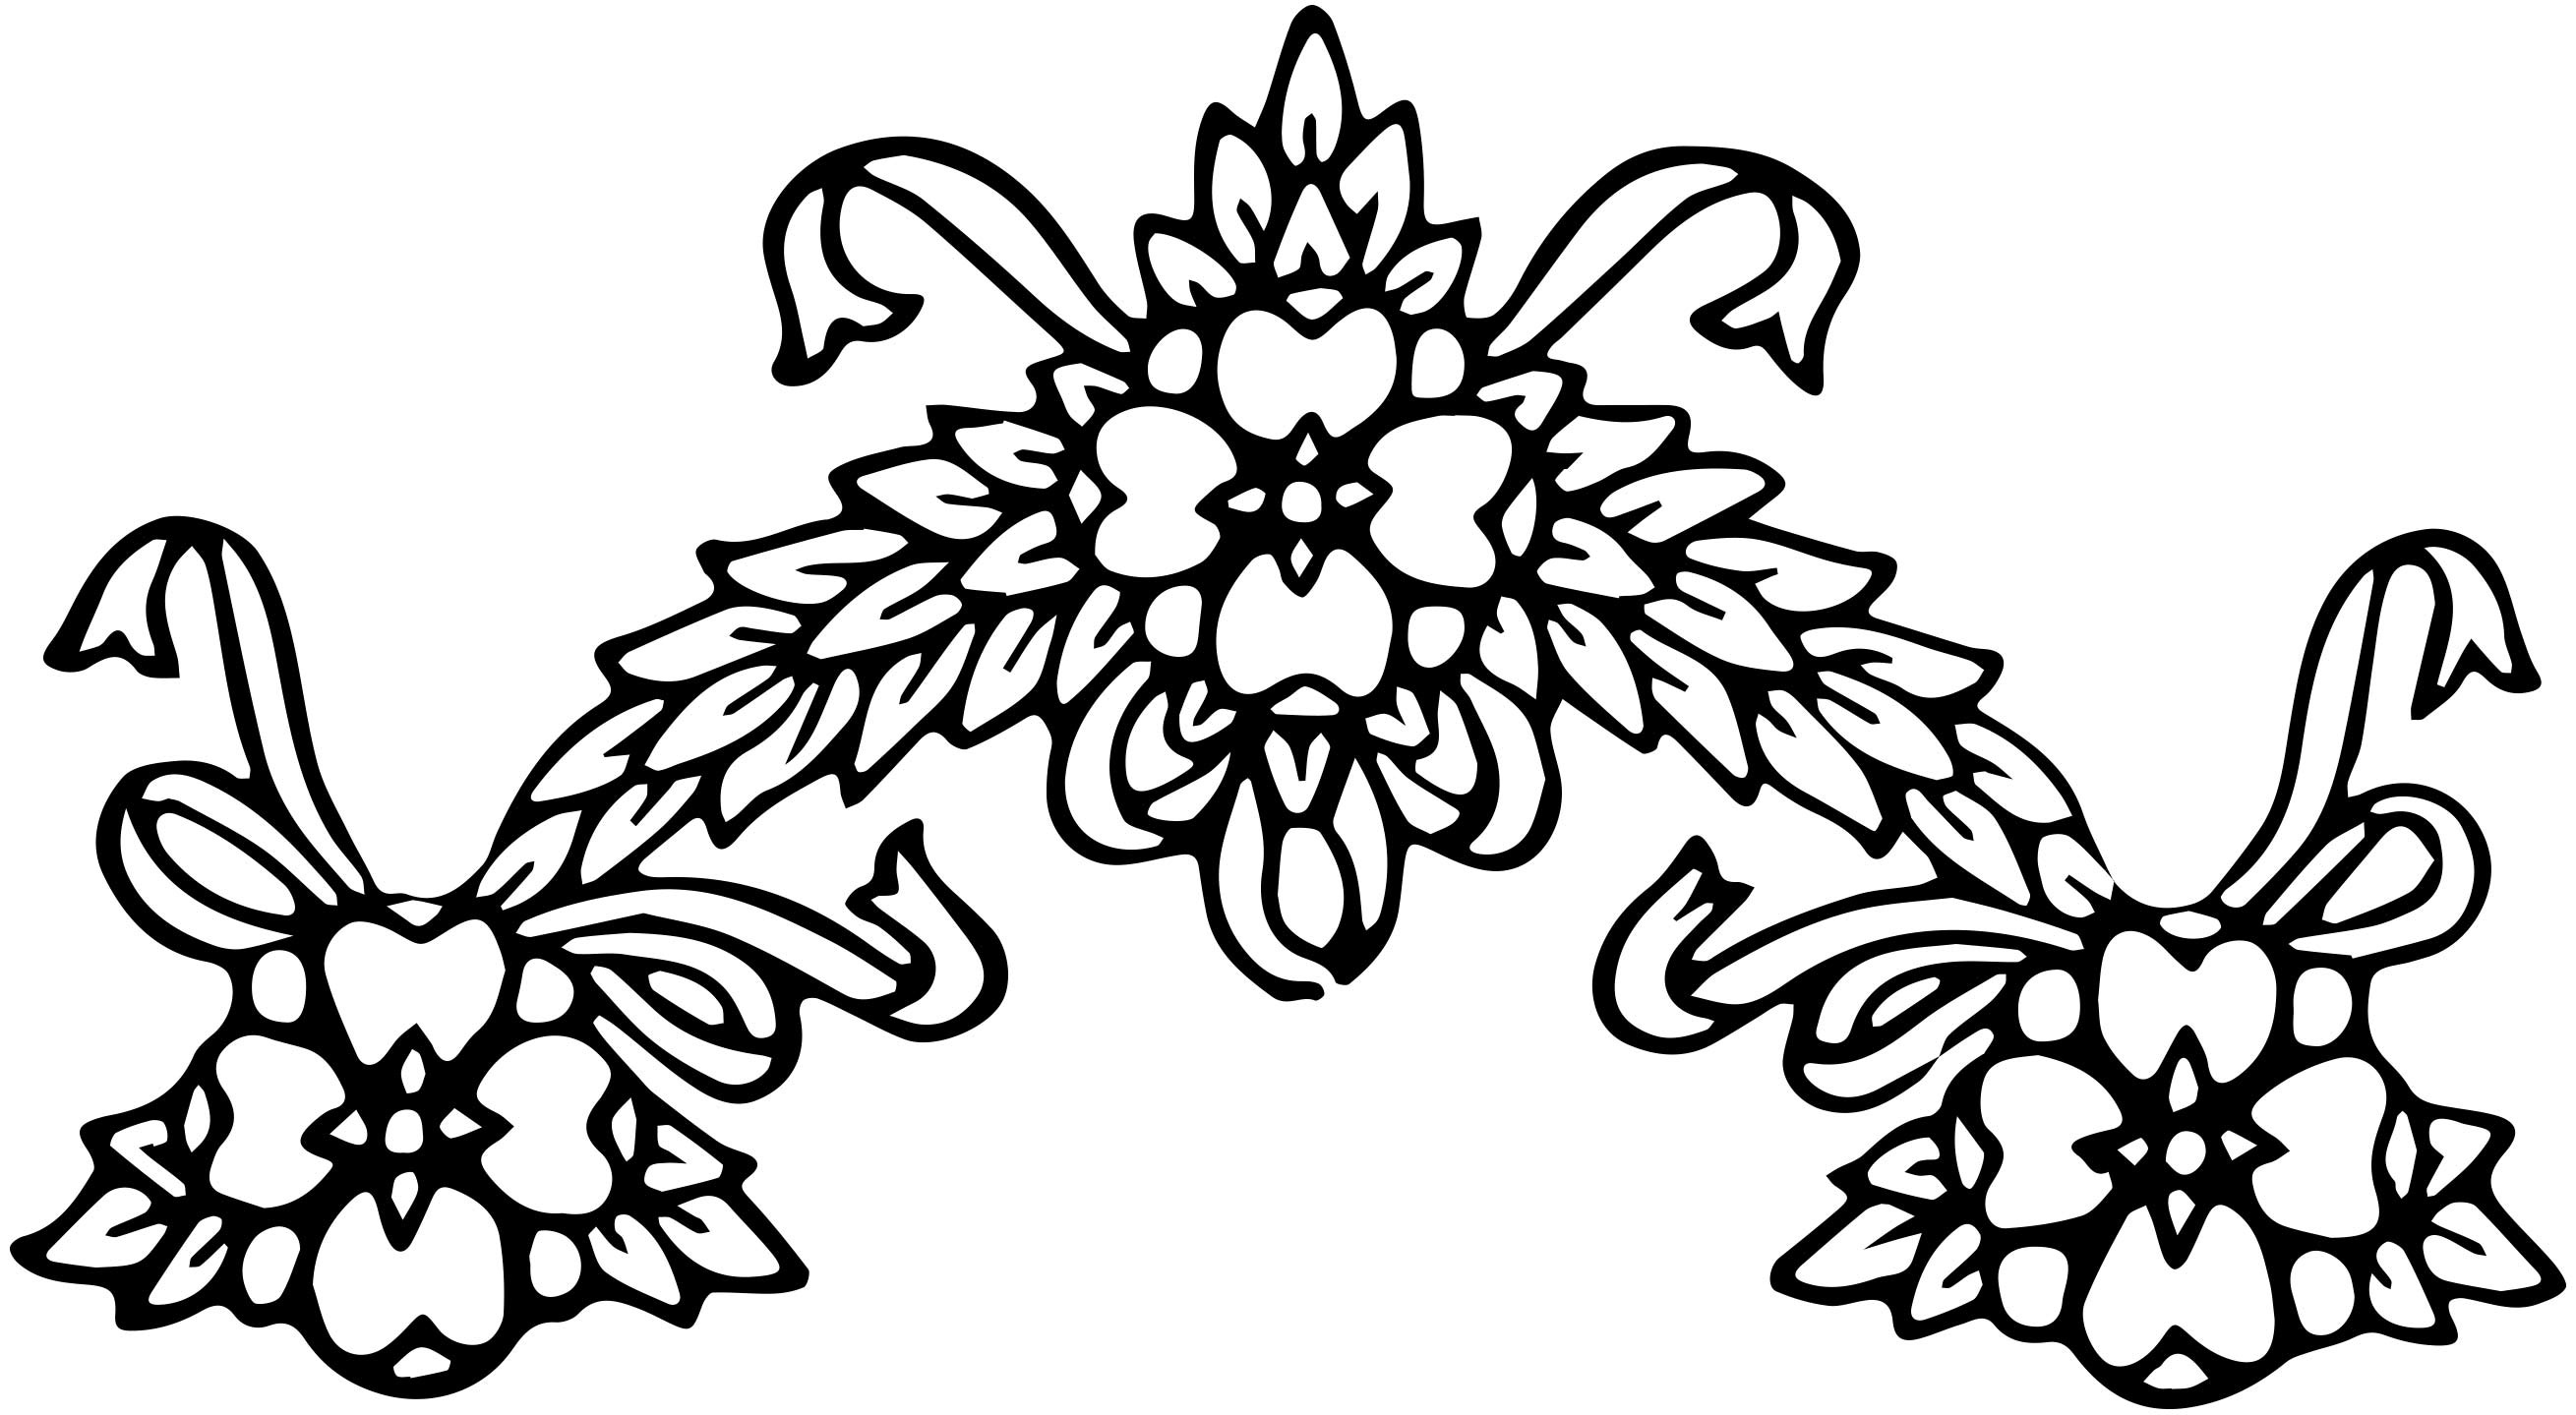 Floral clipart black and white Flower Free and and Download